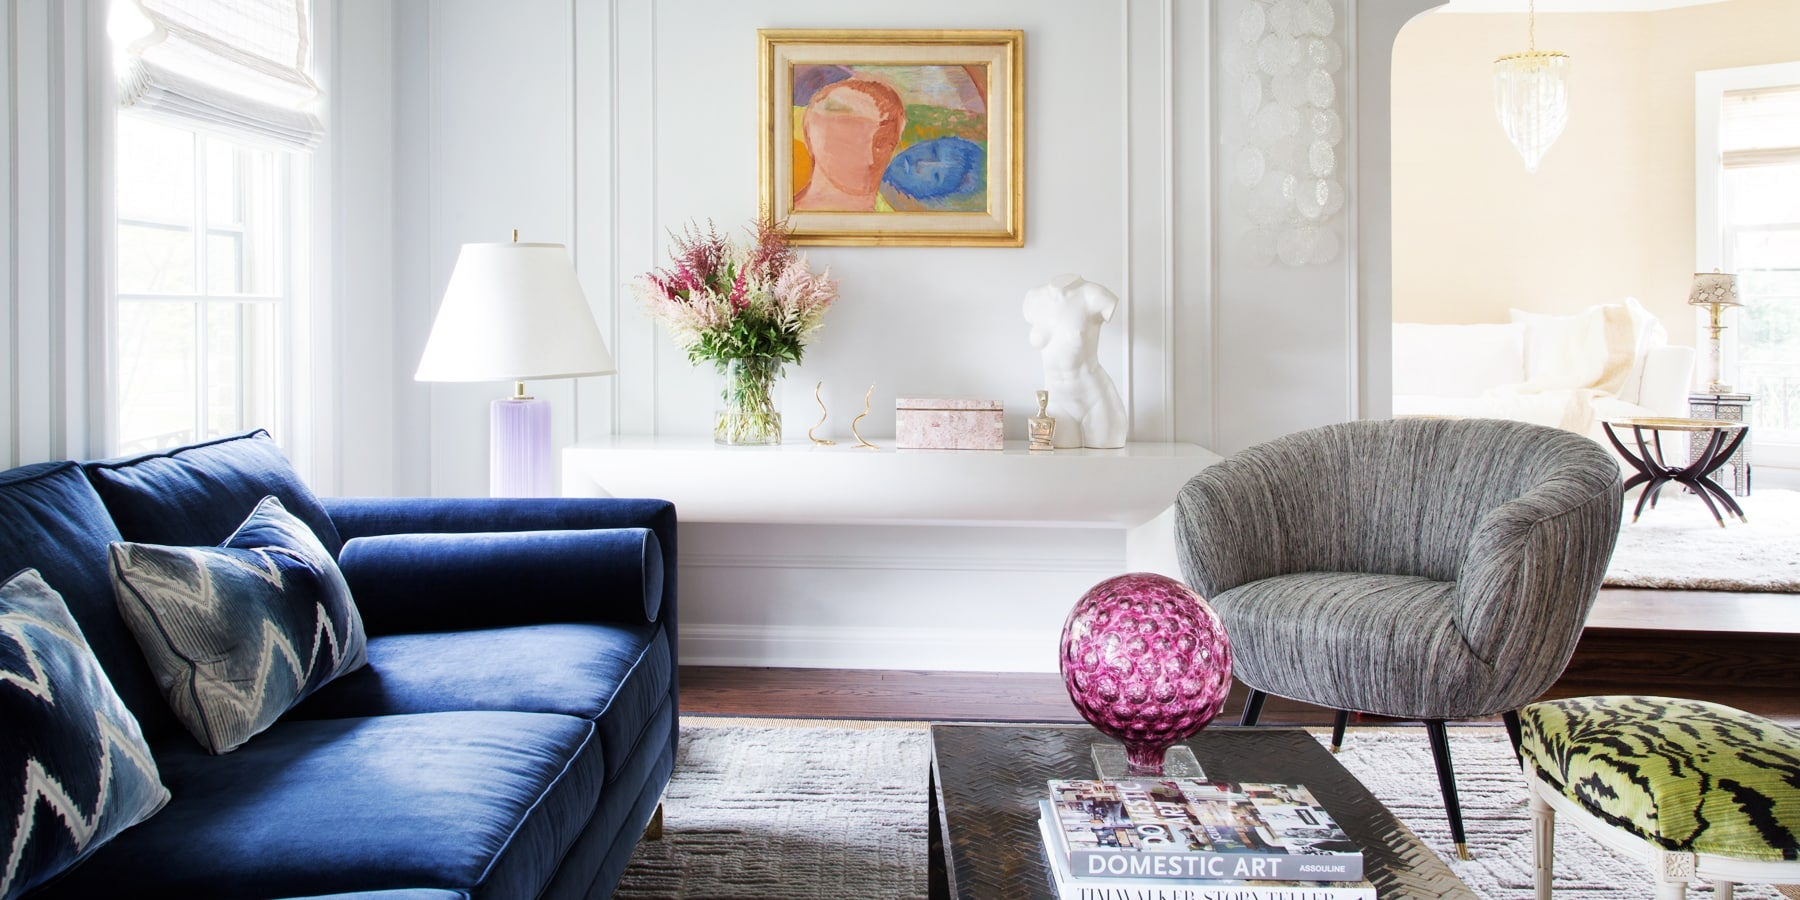 Summer Thornton Serves Up Traditional Spaces With A Cheeky Twist